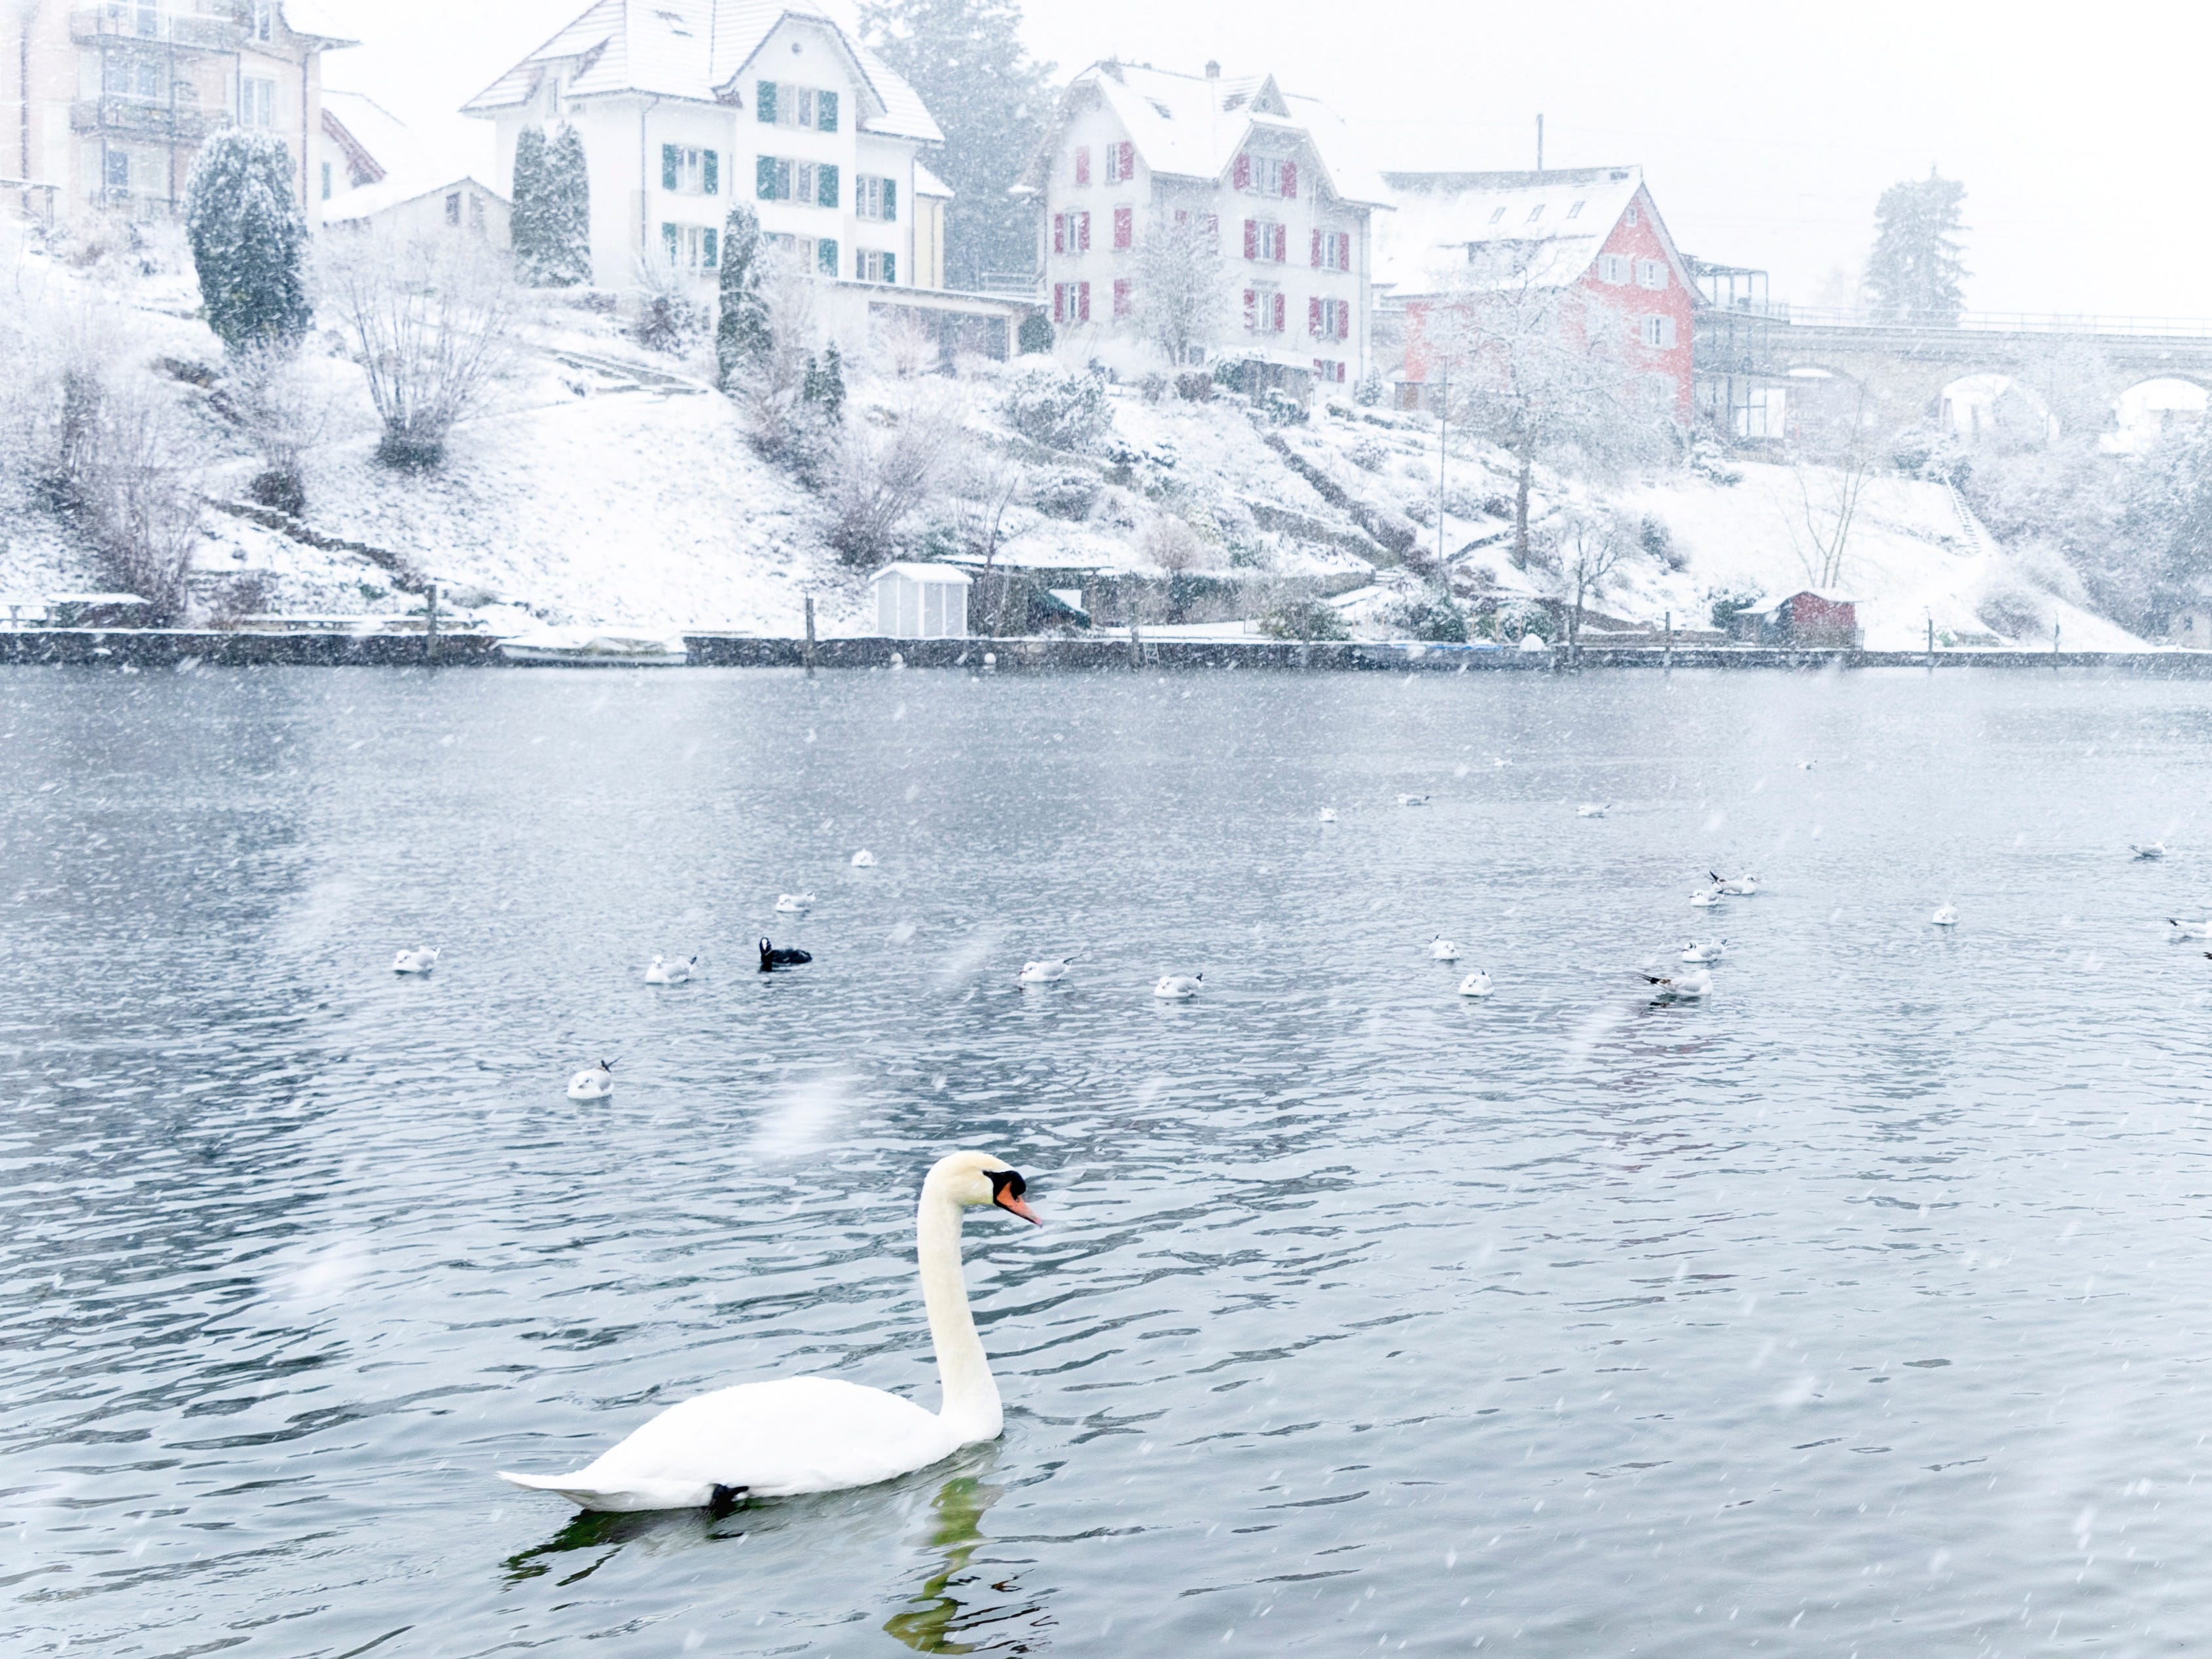 A swan swims the Rhine during snowy weather in Schaffhausen, Switzerland on Jan. 5, 2019.